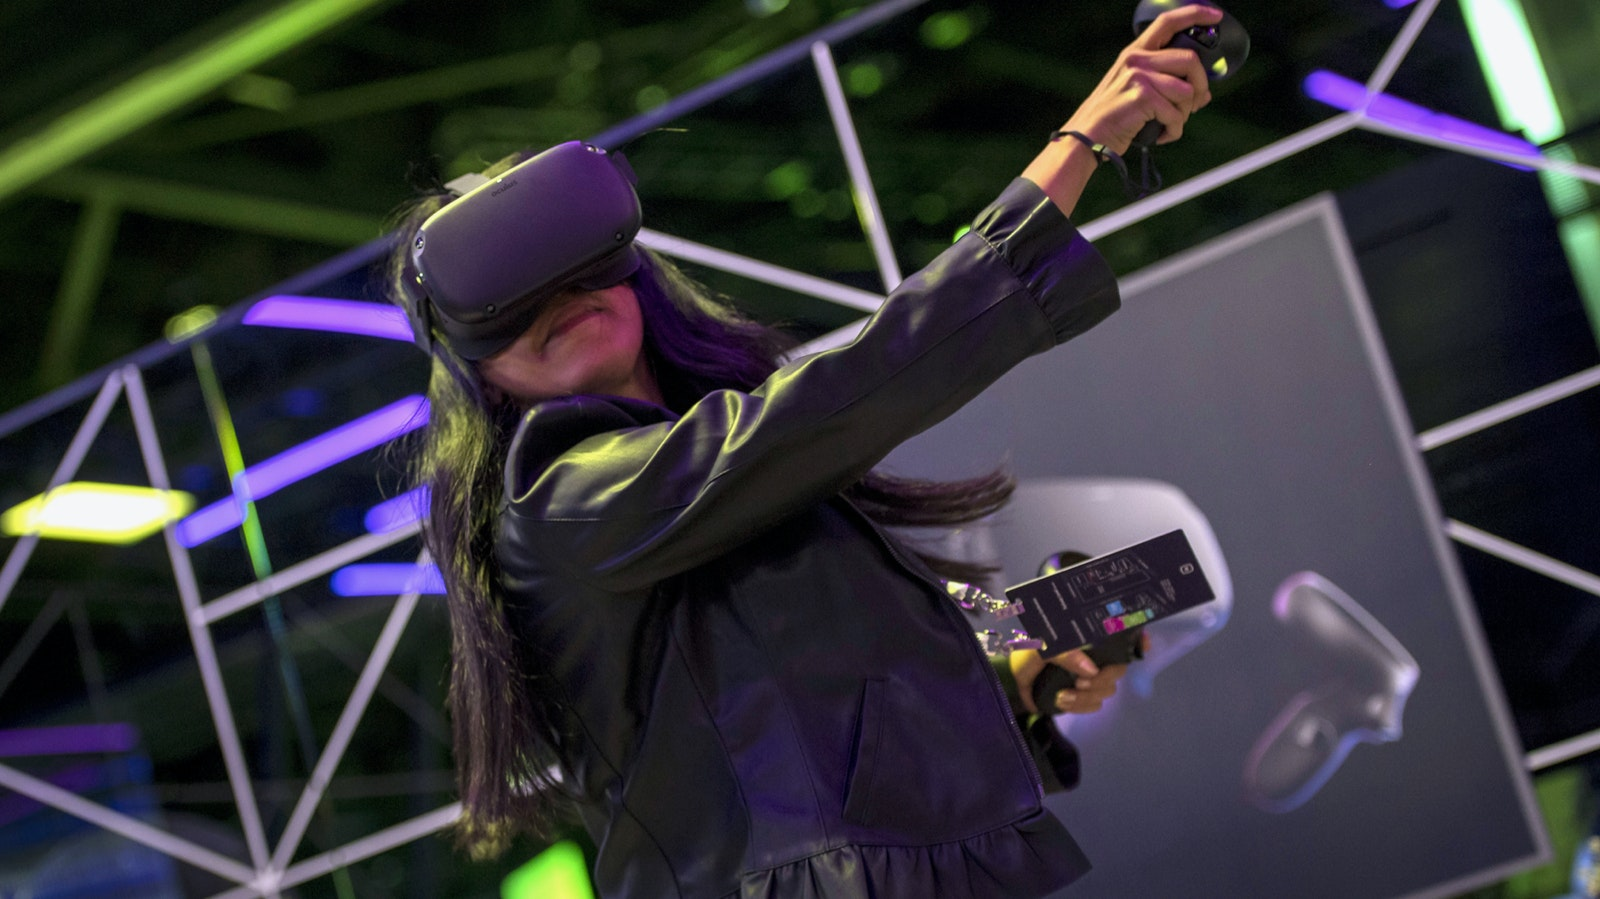 An attendee at a Facebook conference using the Oculus Quest virtual reality headset. Photo by Bloomberg